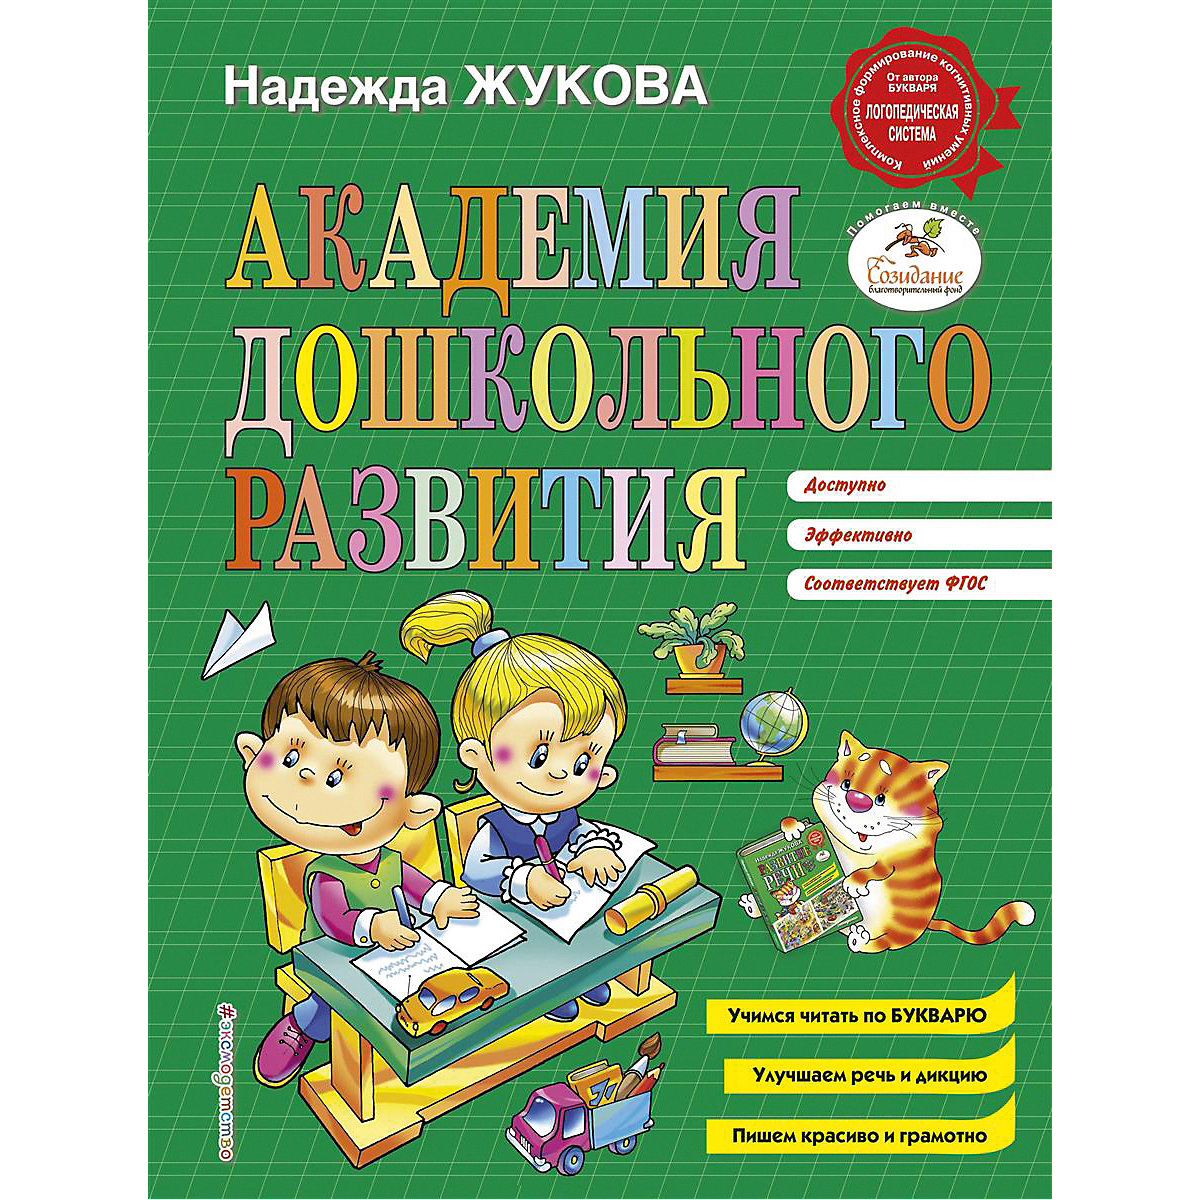 Books EKSMO 8526360 Children Education Encyclopedia Alphabet Dictionary Book For Baby MTpromo